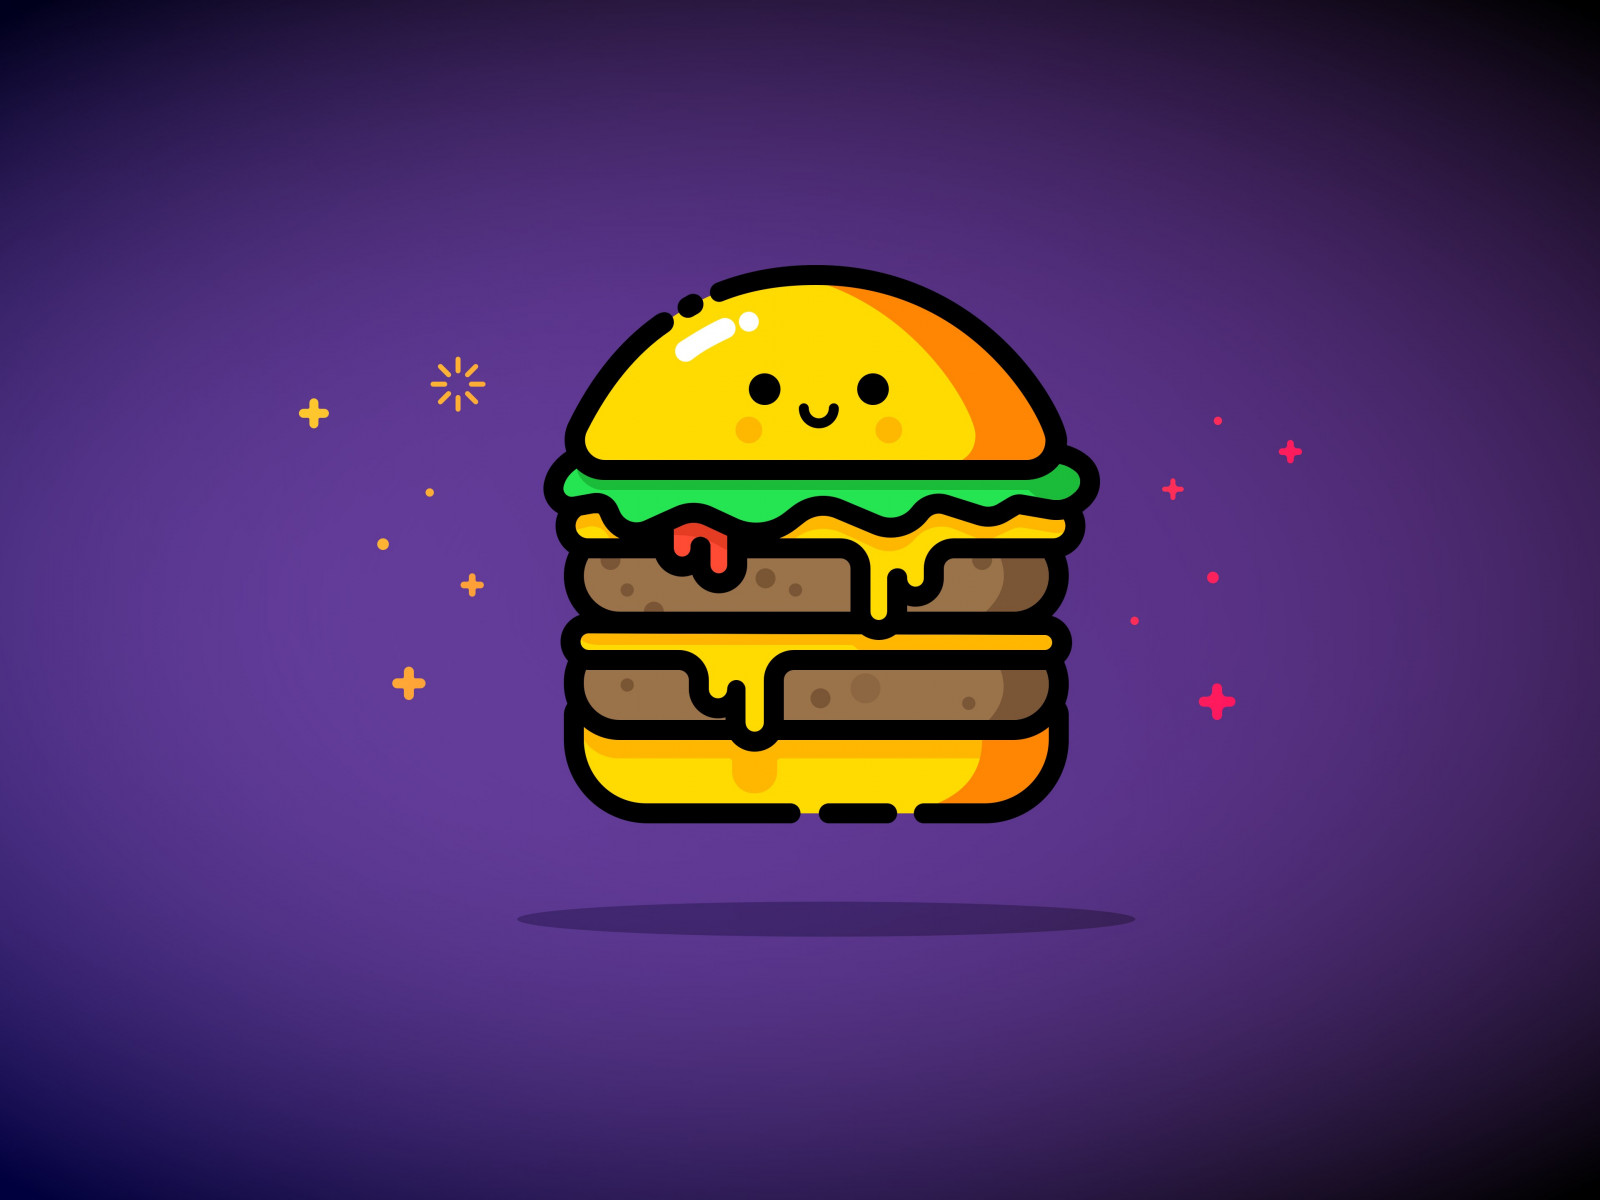 Double cheese wallpaper 1600x1200